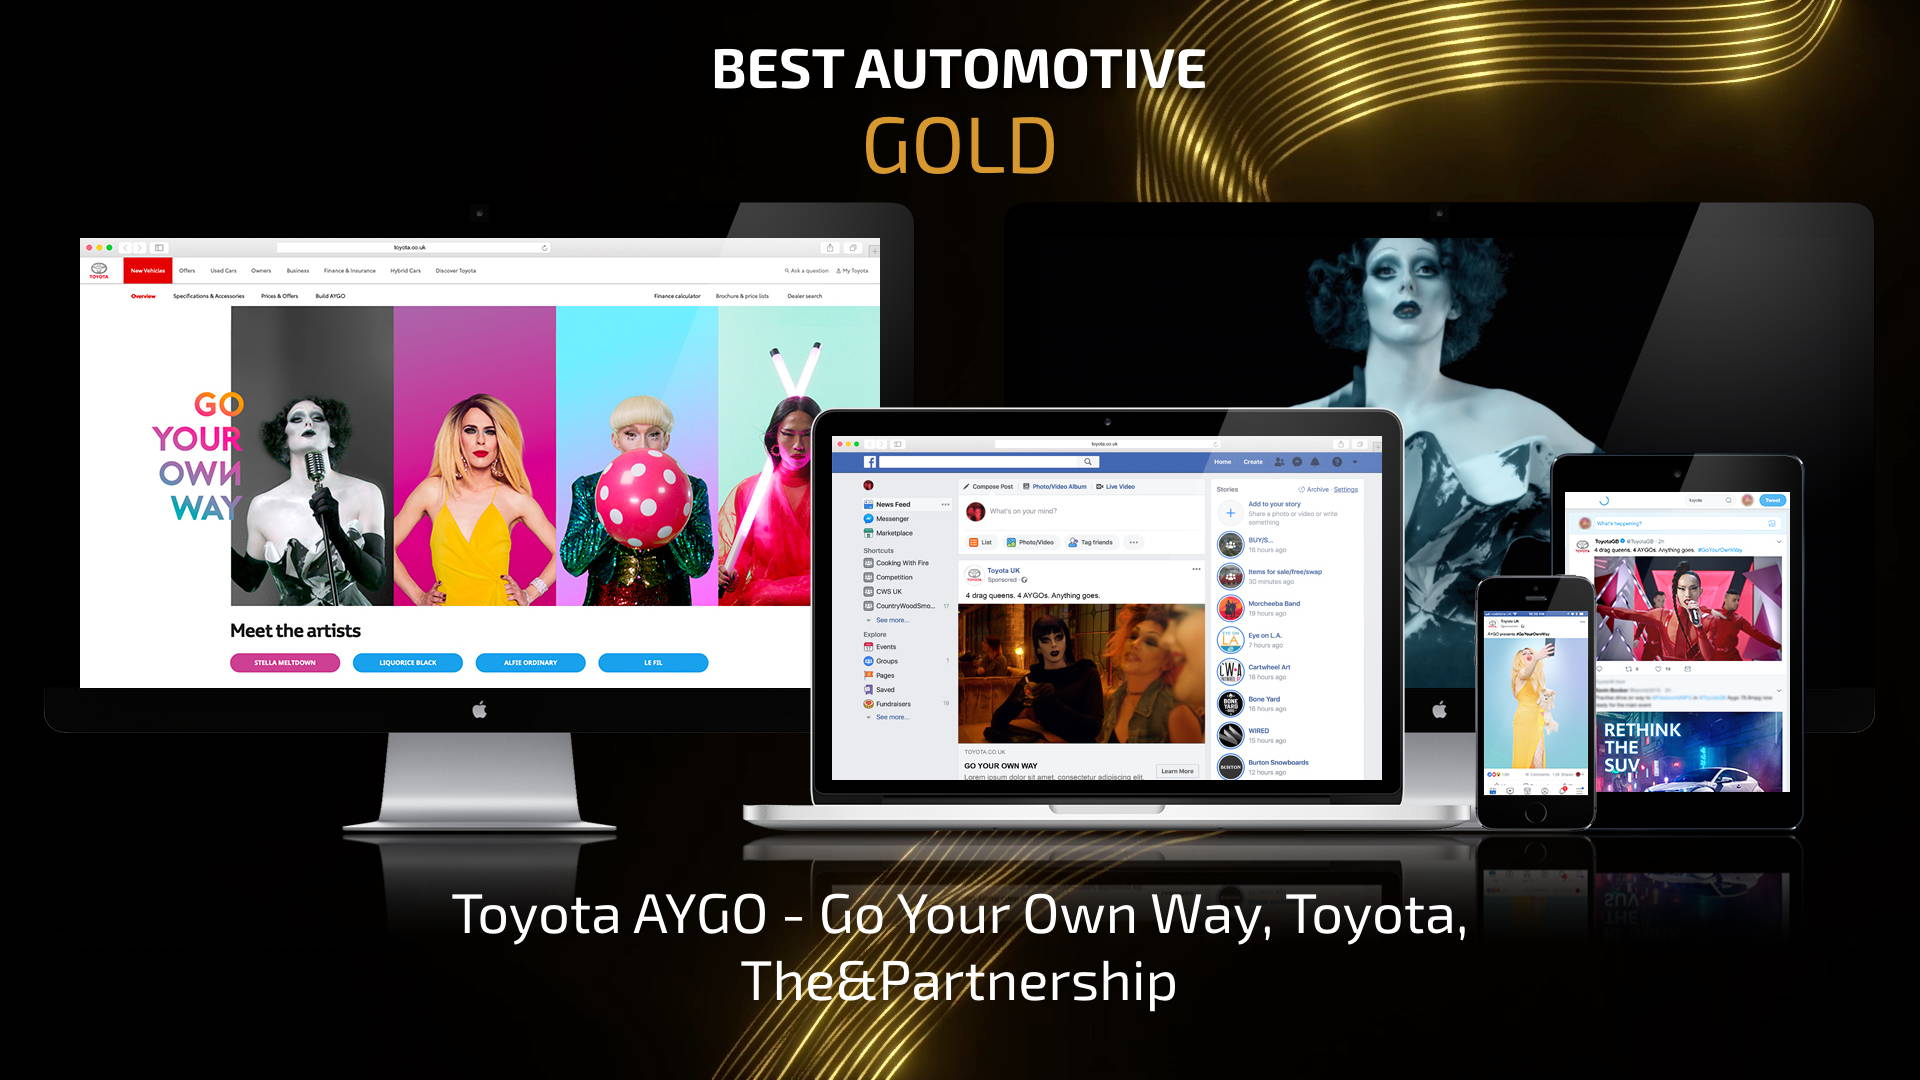 Best Automotive - Gold